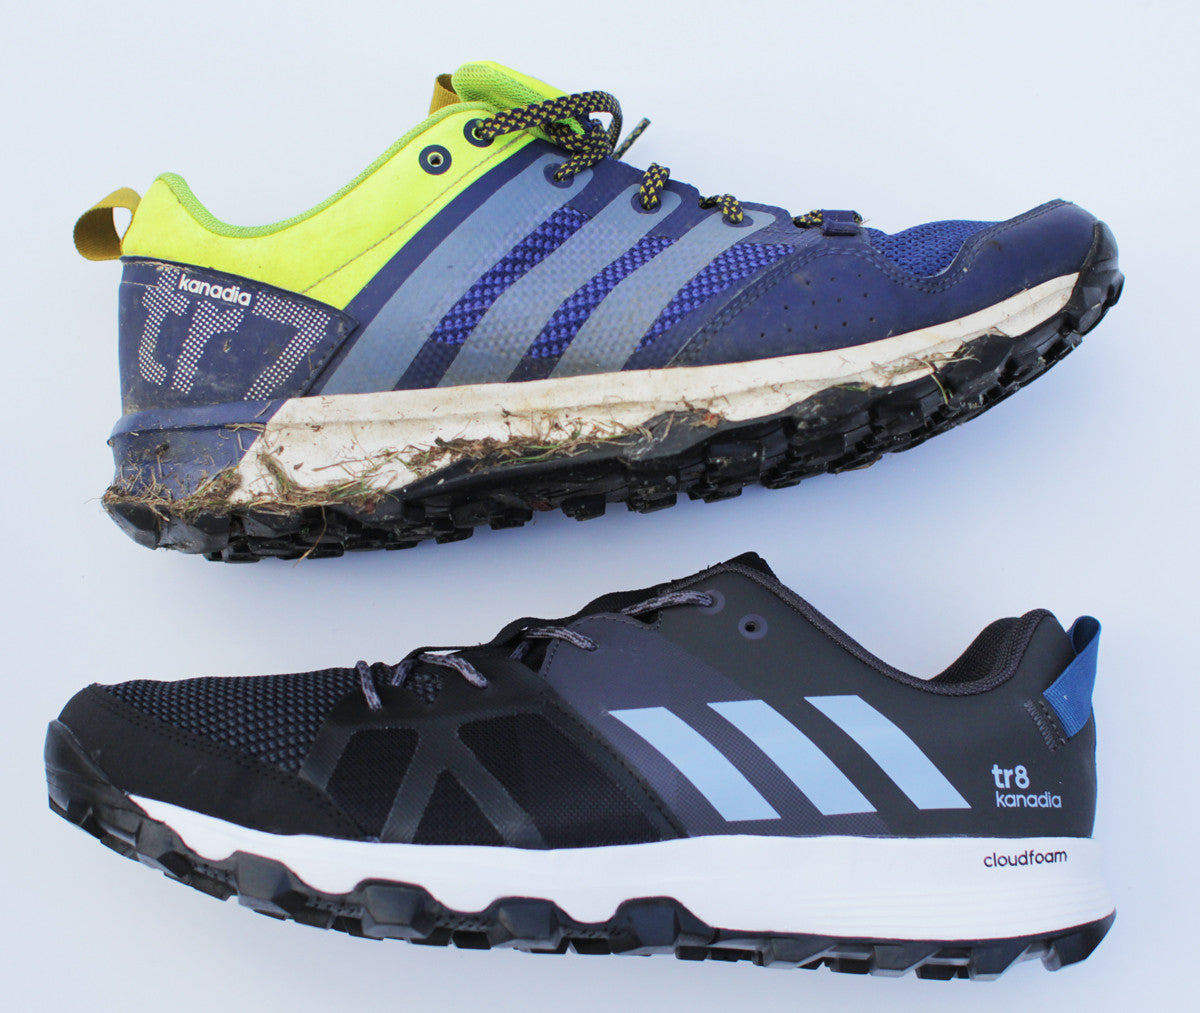 Adidas Kanadia 8 Trail Running Shoes Review – Sundried Activewear 20adb15c4ef